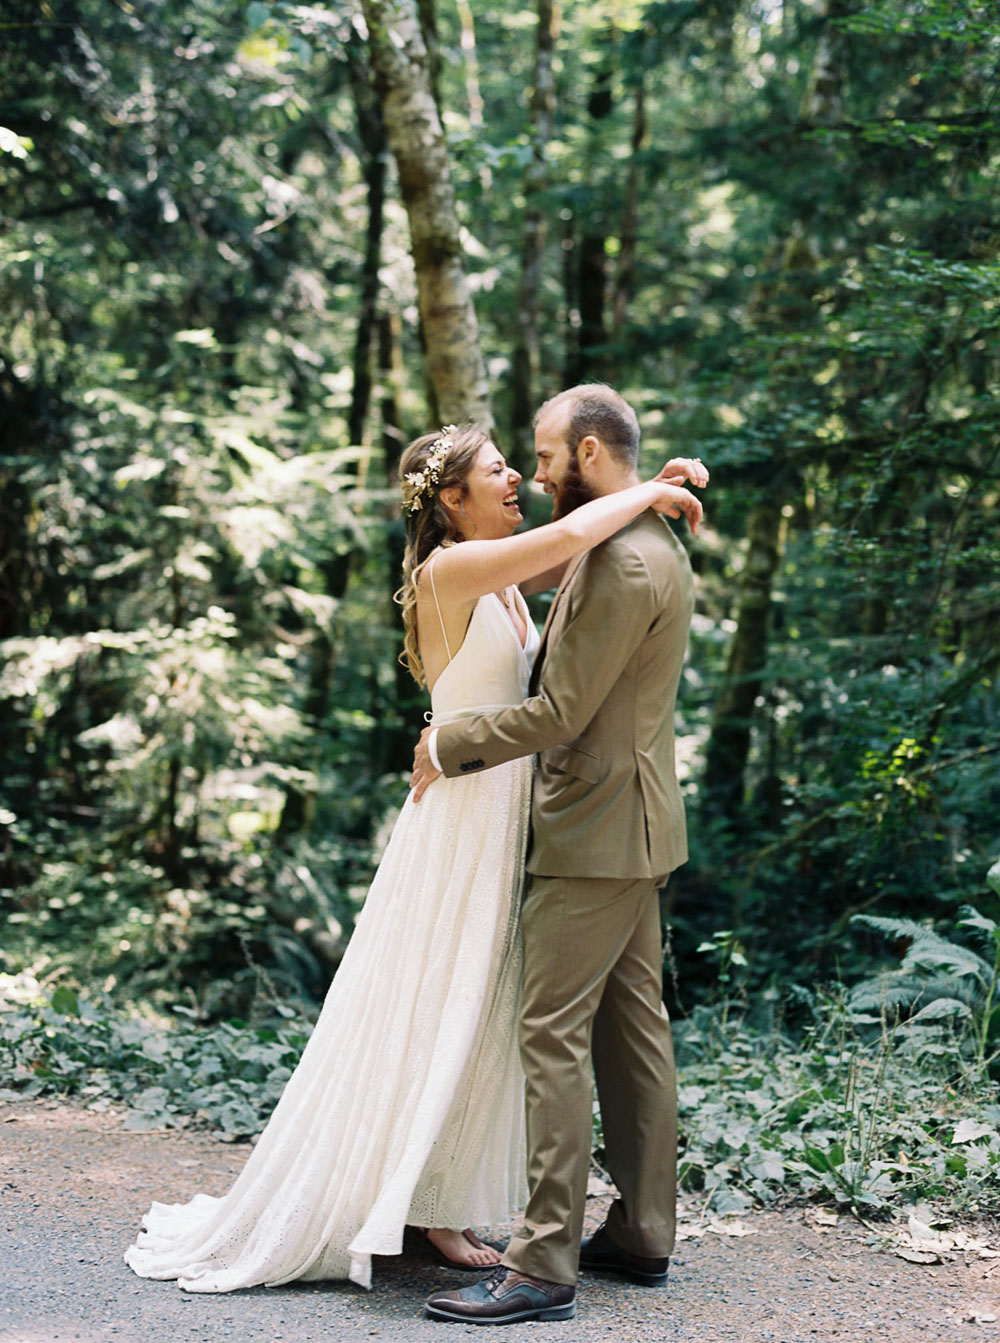 Seattle Wedding Photographer Anna Peters captures bride and groom atWellspring Spa Wedding at Mt. Rainier